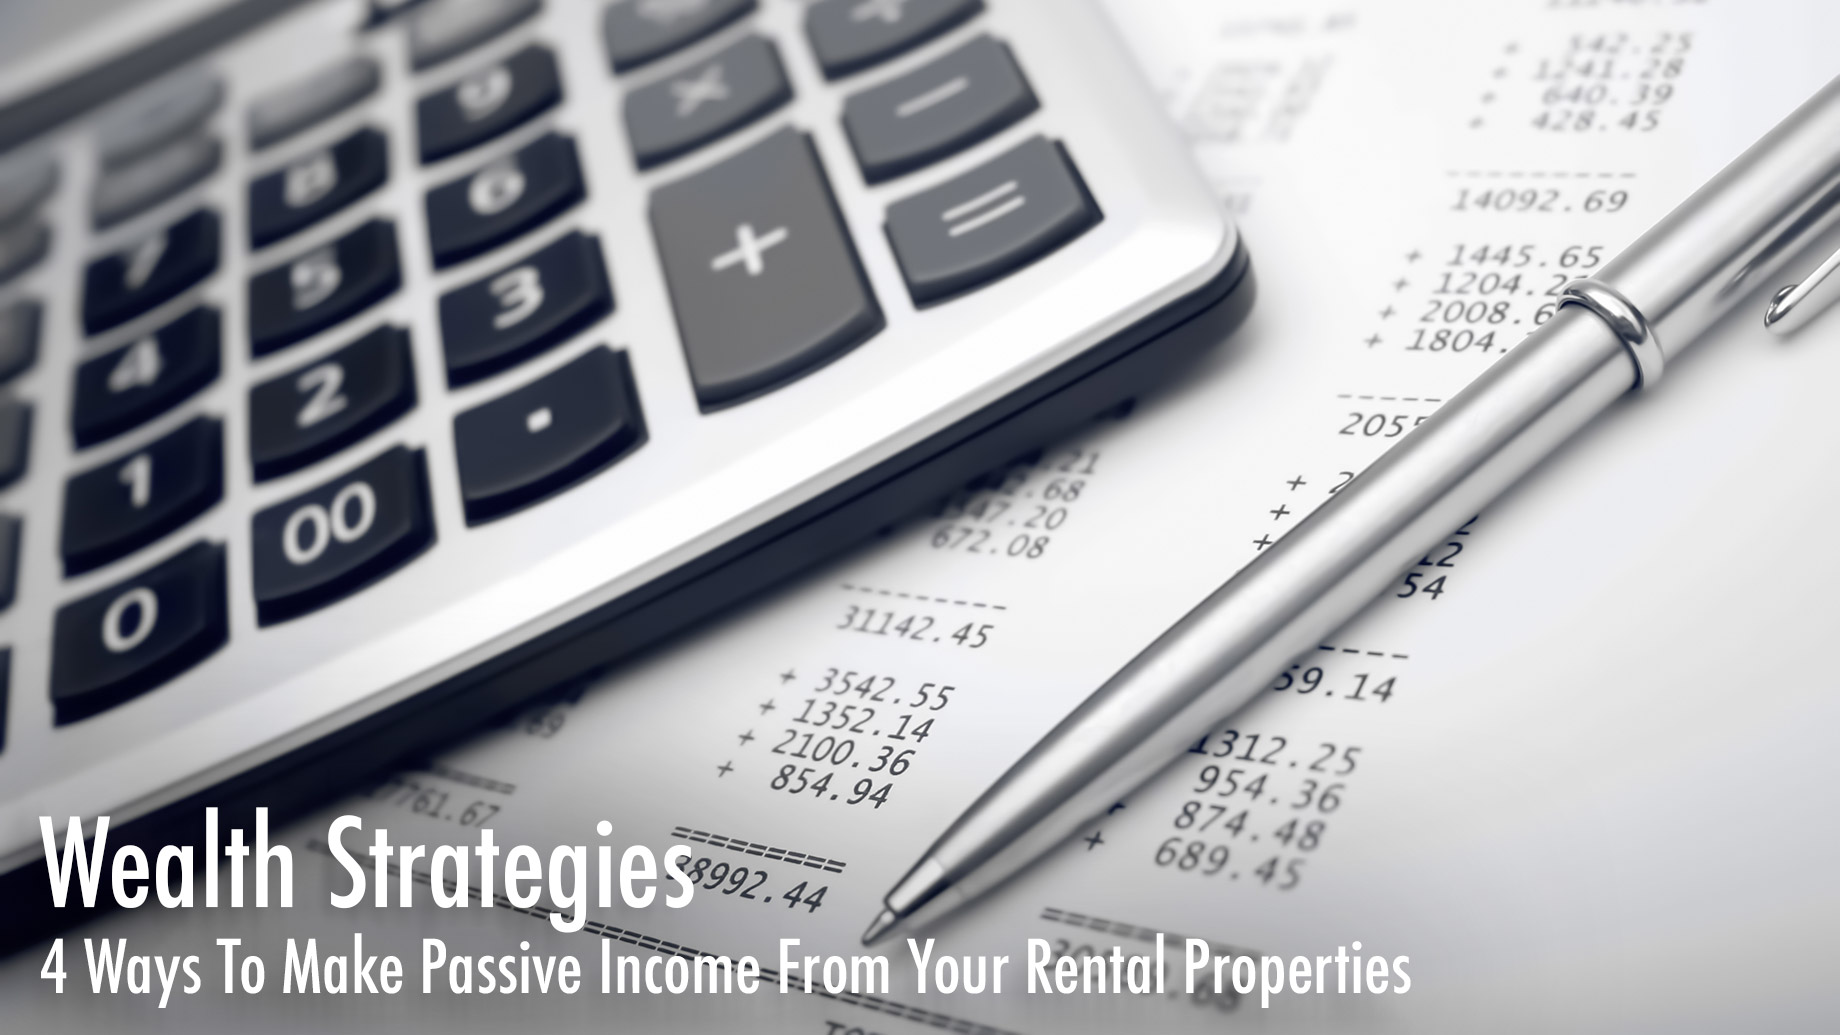 Wealth Strategies - 4 Ways To Make Passive Income From Your Rental Properties